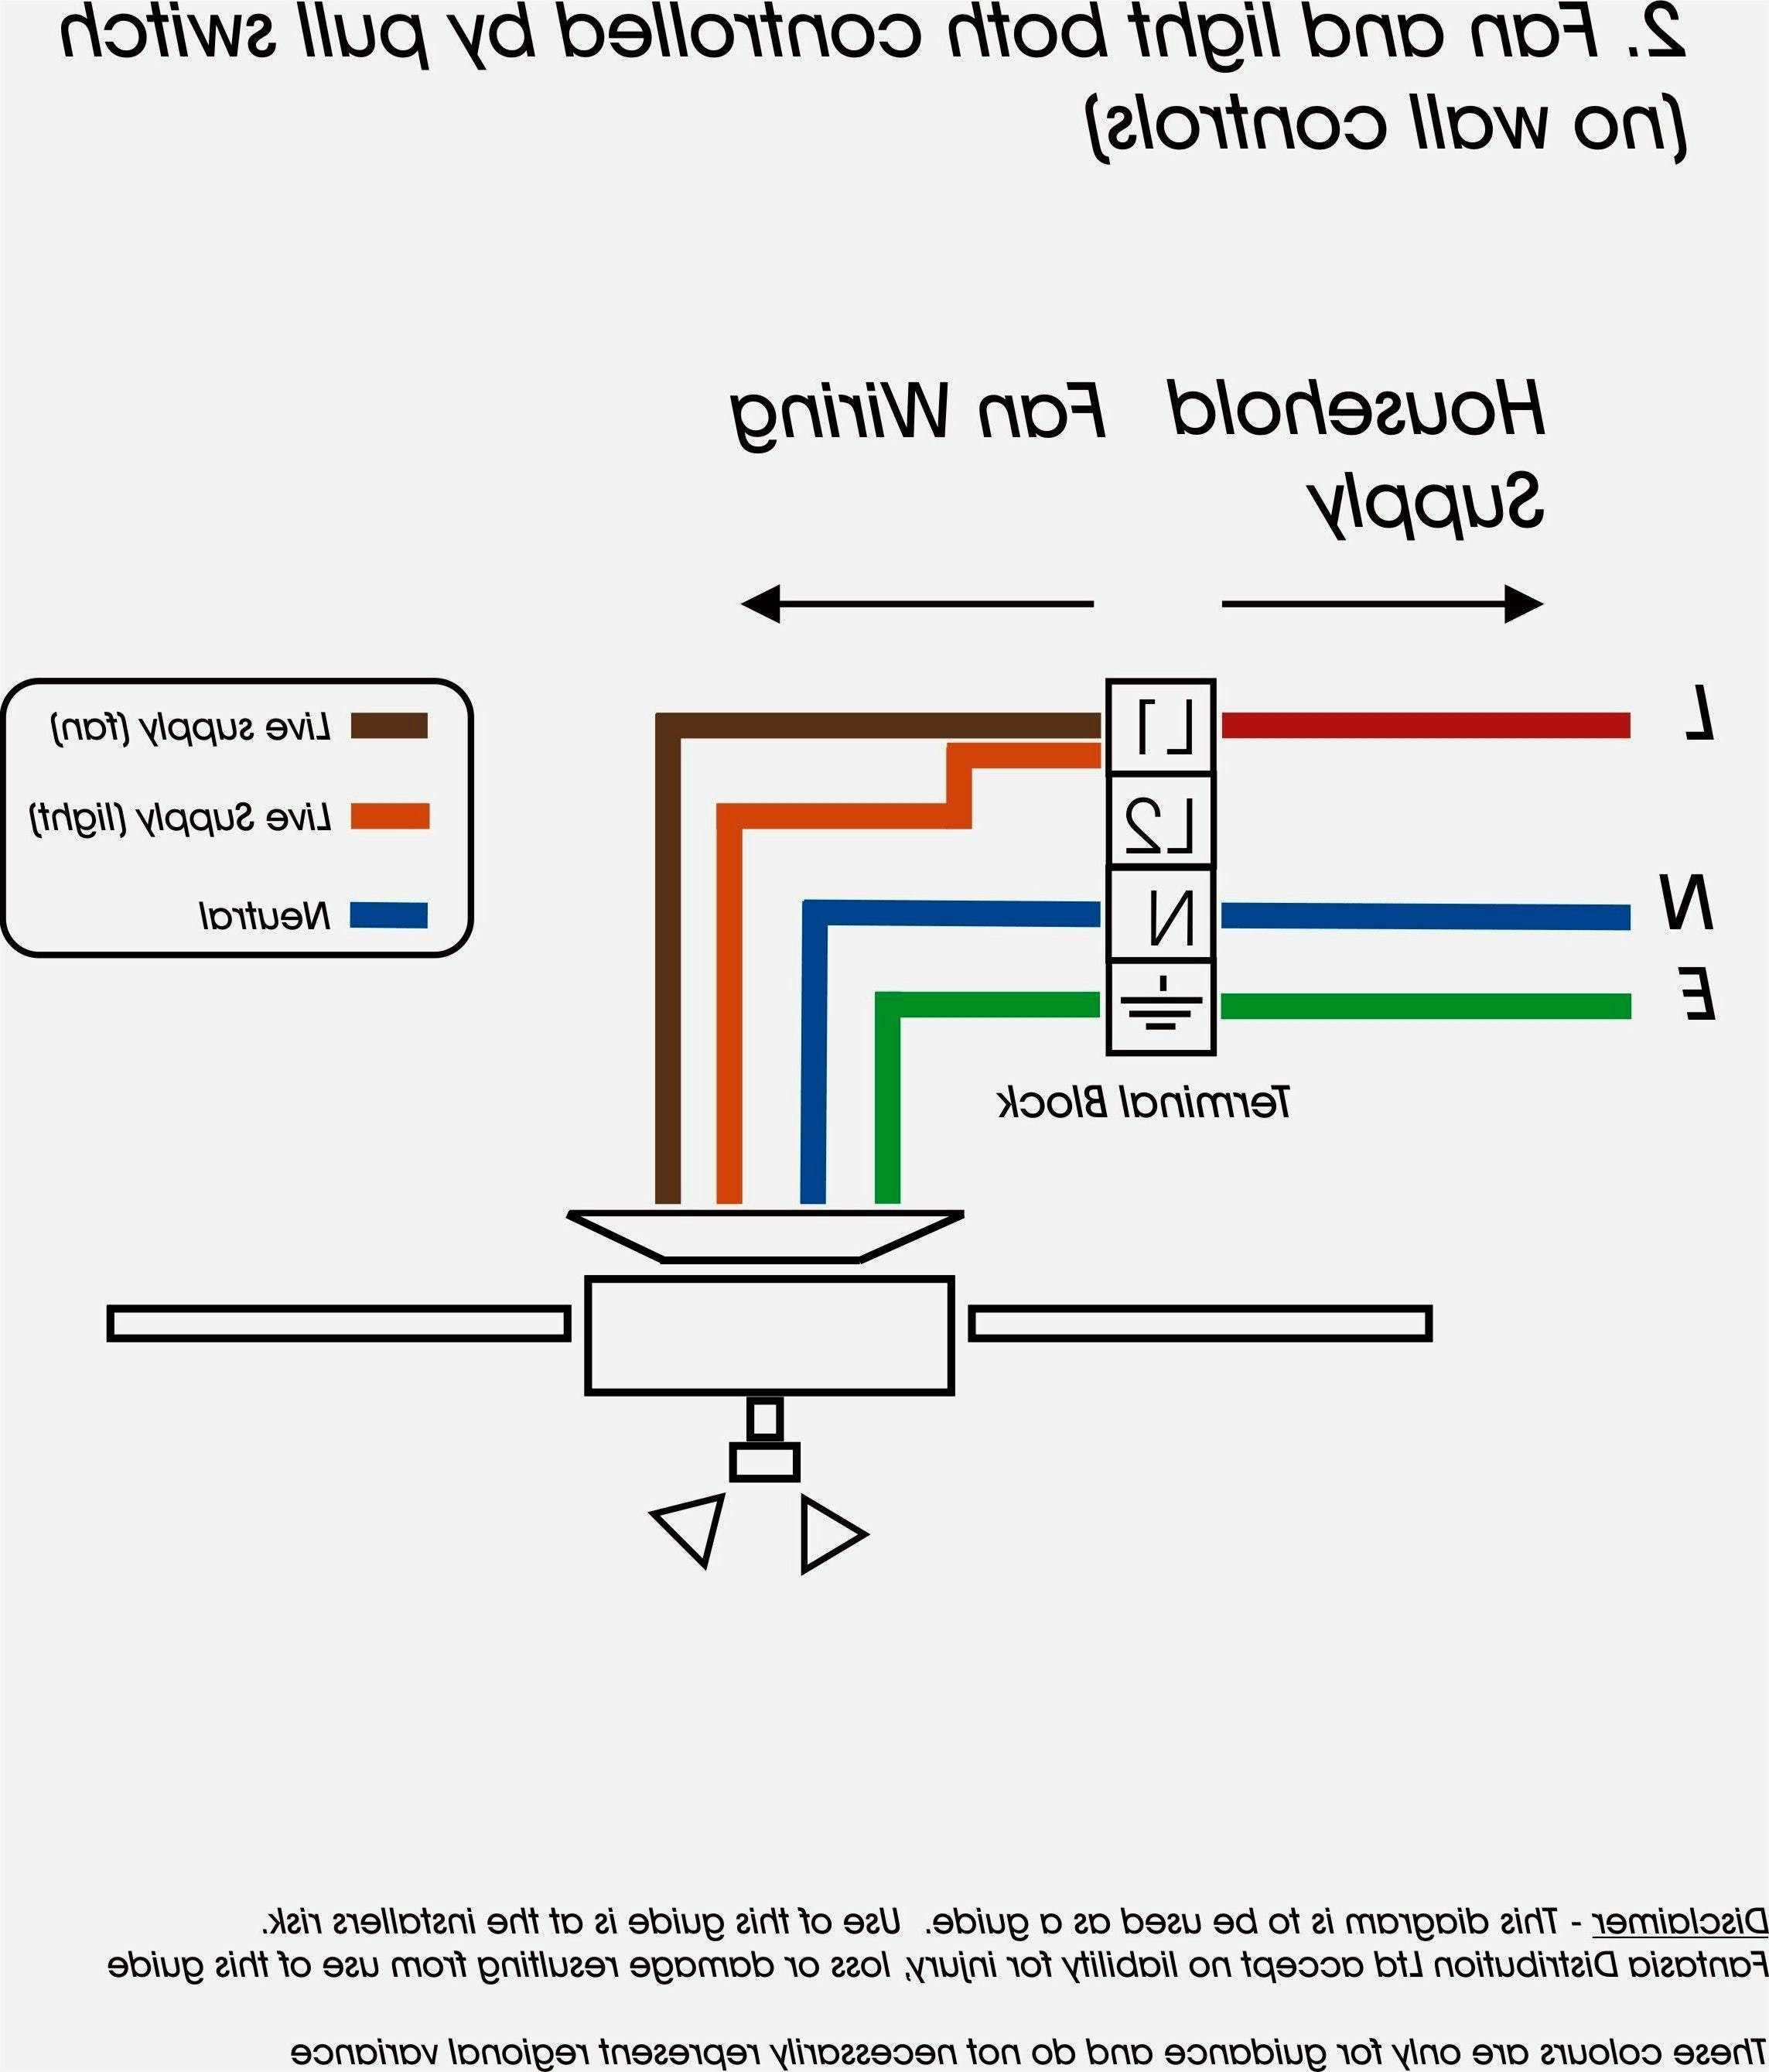 Wiring Diagram for 7 Wire Trailer Plug 5 Wire Trailer Plug Diagram Valid Wiring Diagram for 5 Pin Trailer Of Wiring Diagram for 7 Wire Trailer Plug